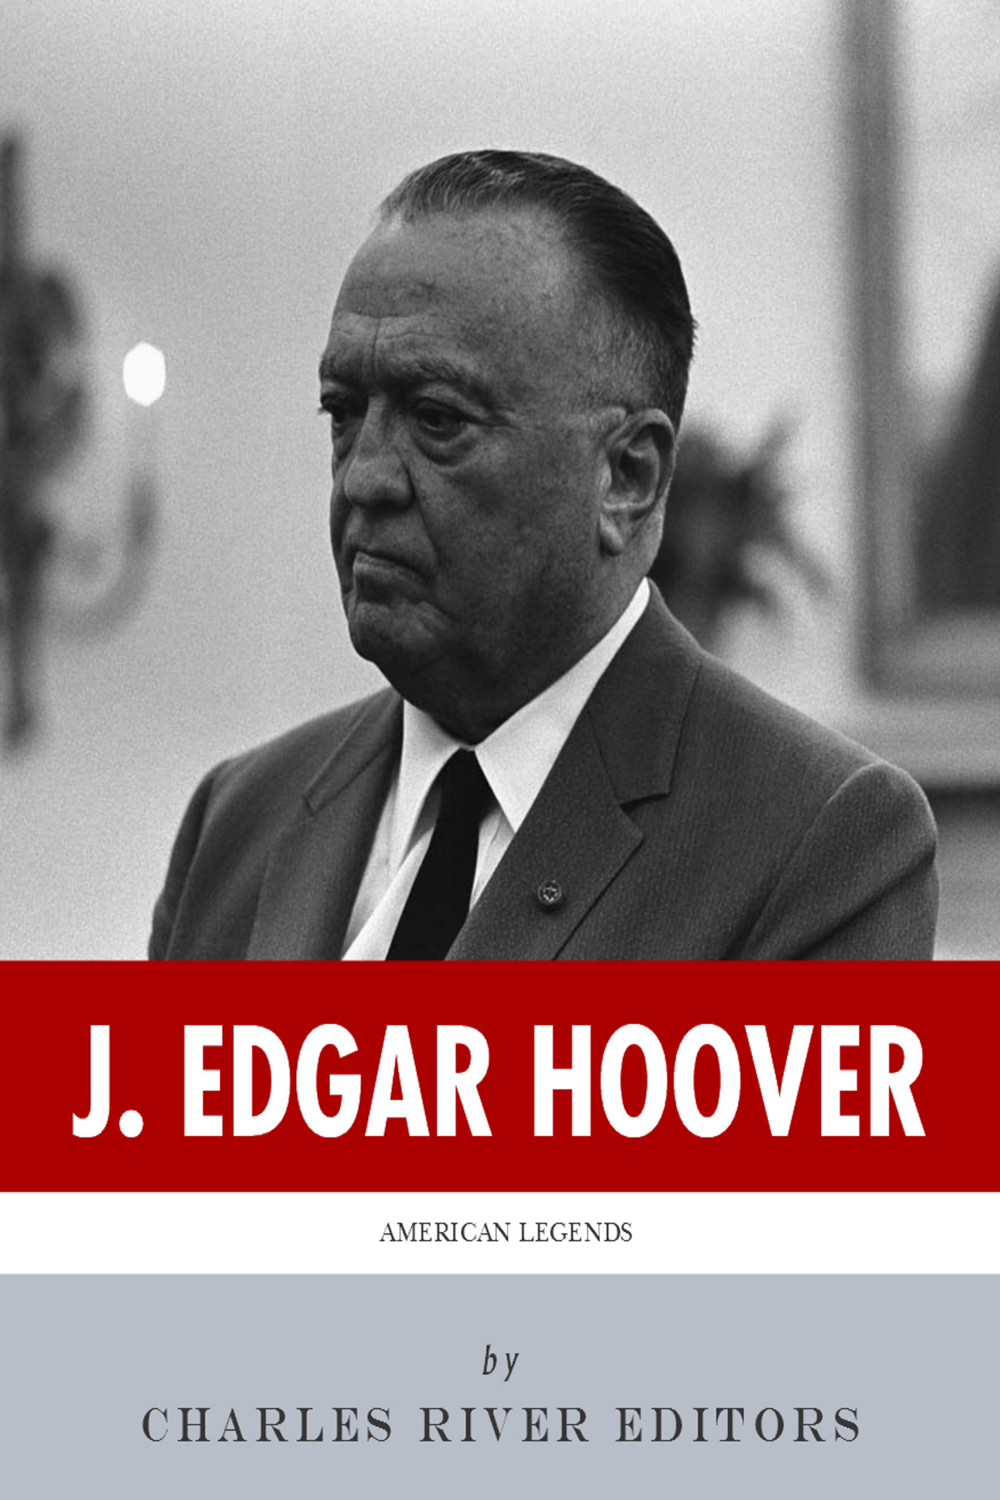 American Legends: The Life of J. Edgar Hoover By: Charles River Editors